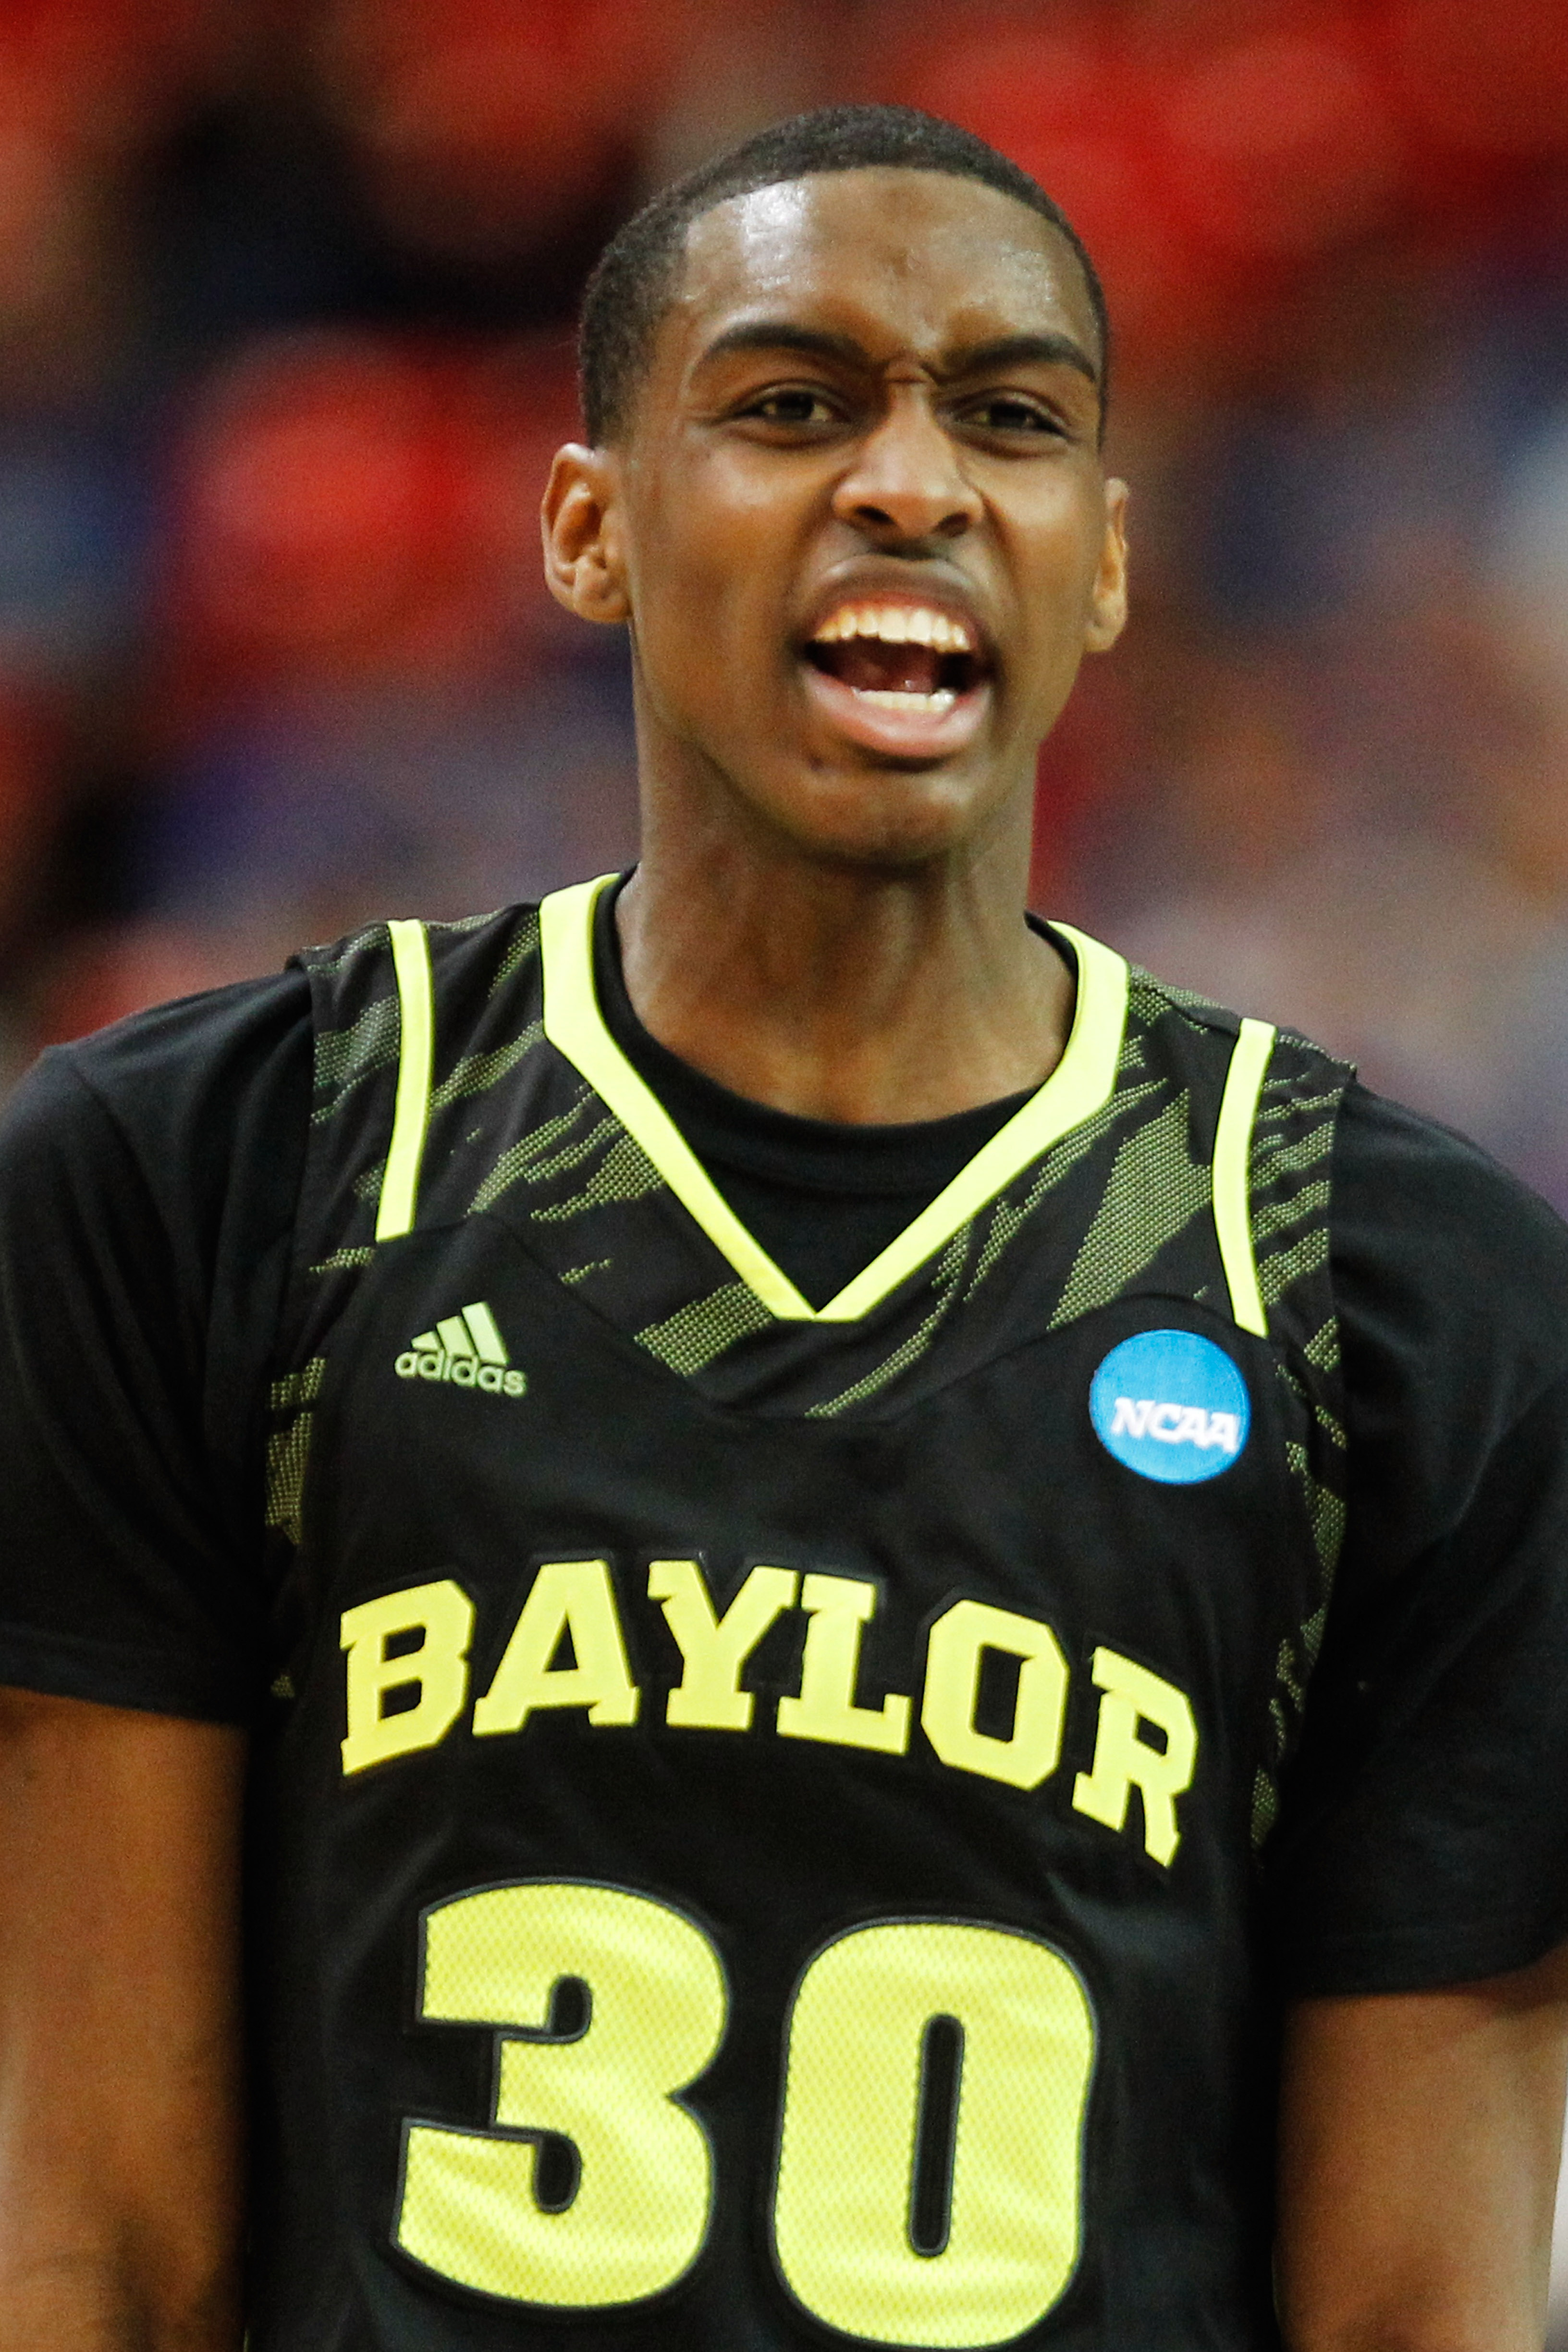 Baylor forward Quincy Miller was the Big 12's co-Freshman of the Year. (Getty Images)